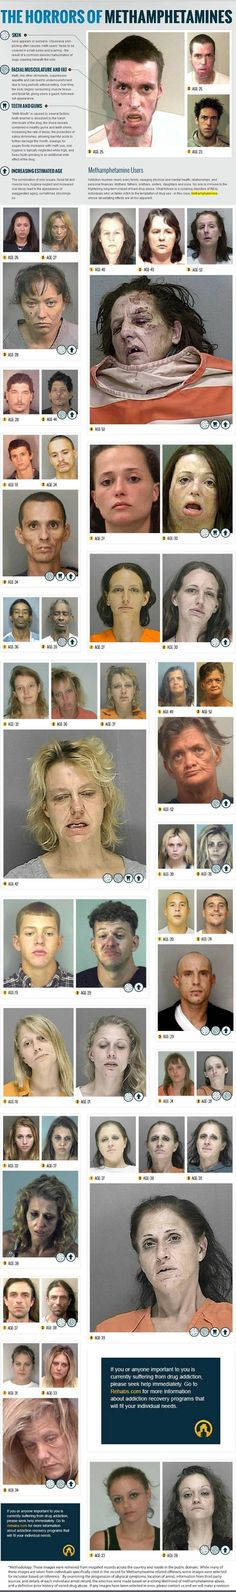 meth face horrors